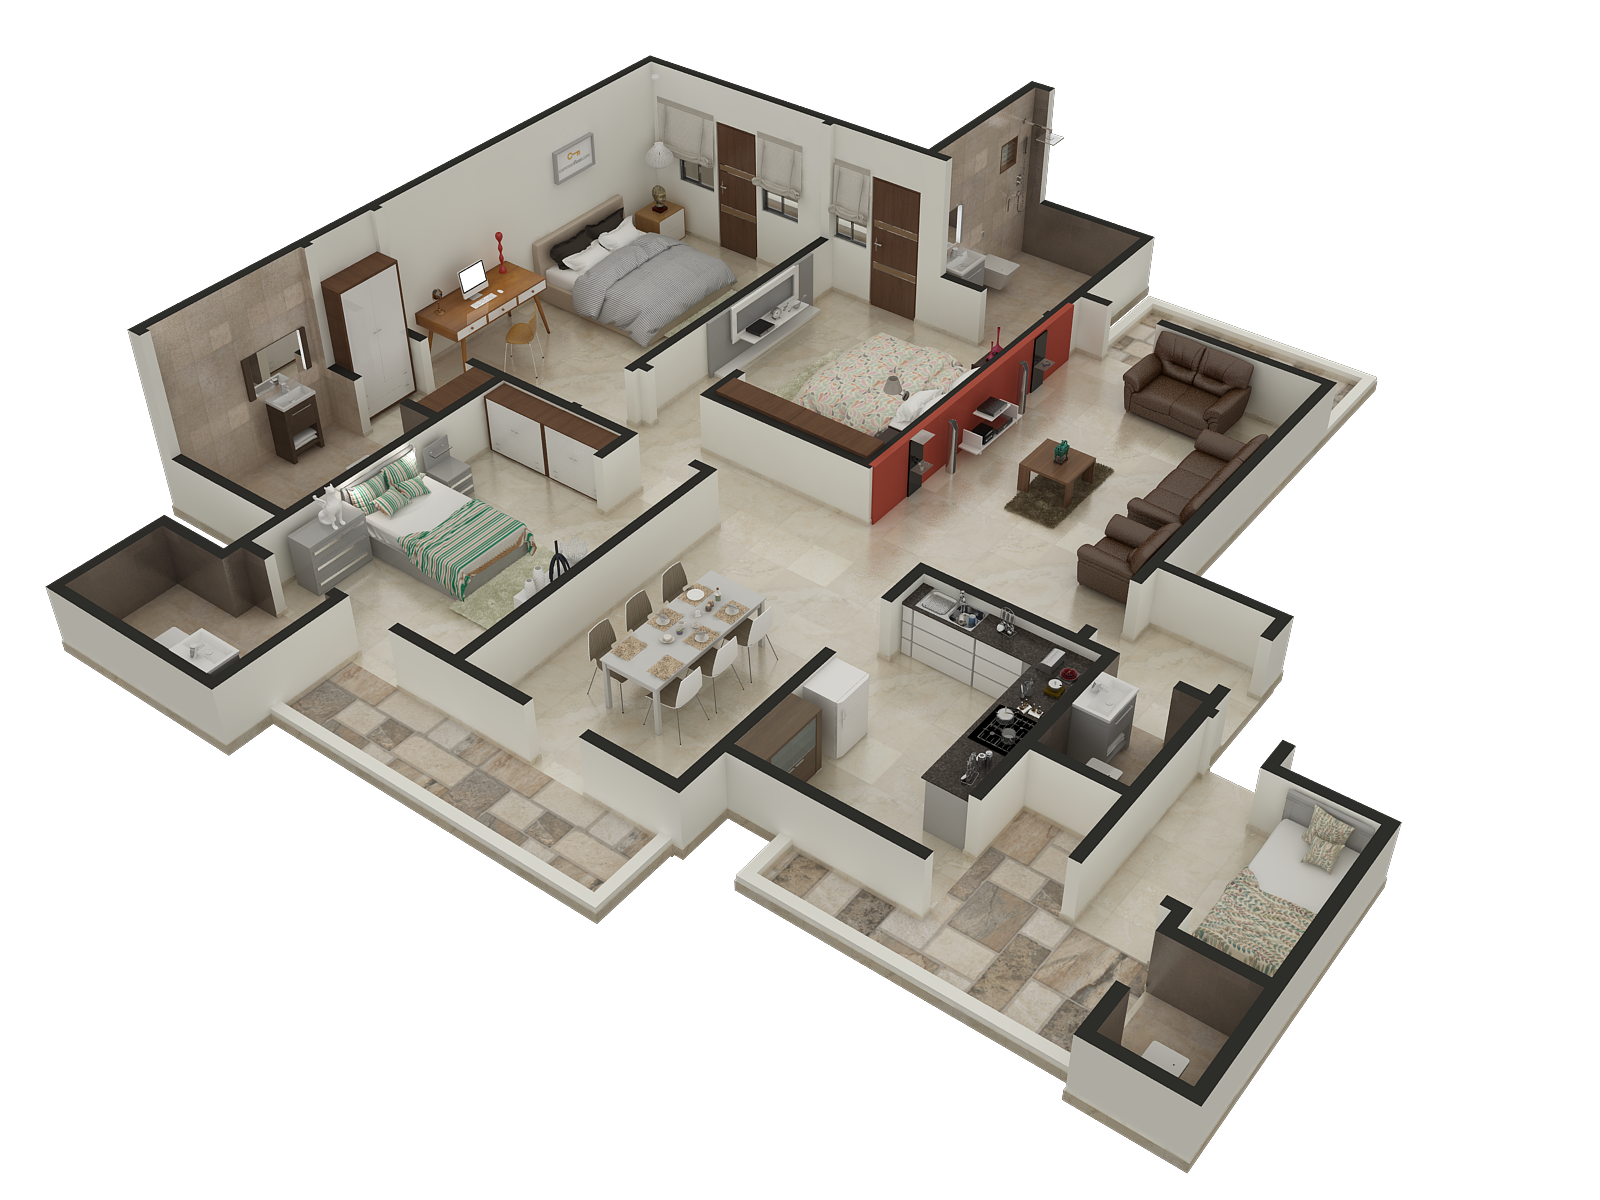 Using Interactive 3d Floor Plans In Your Marketing